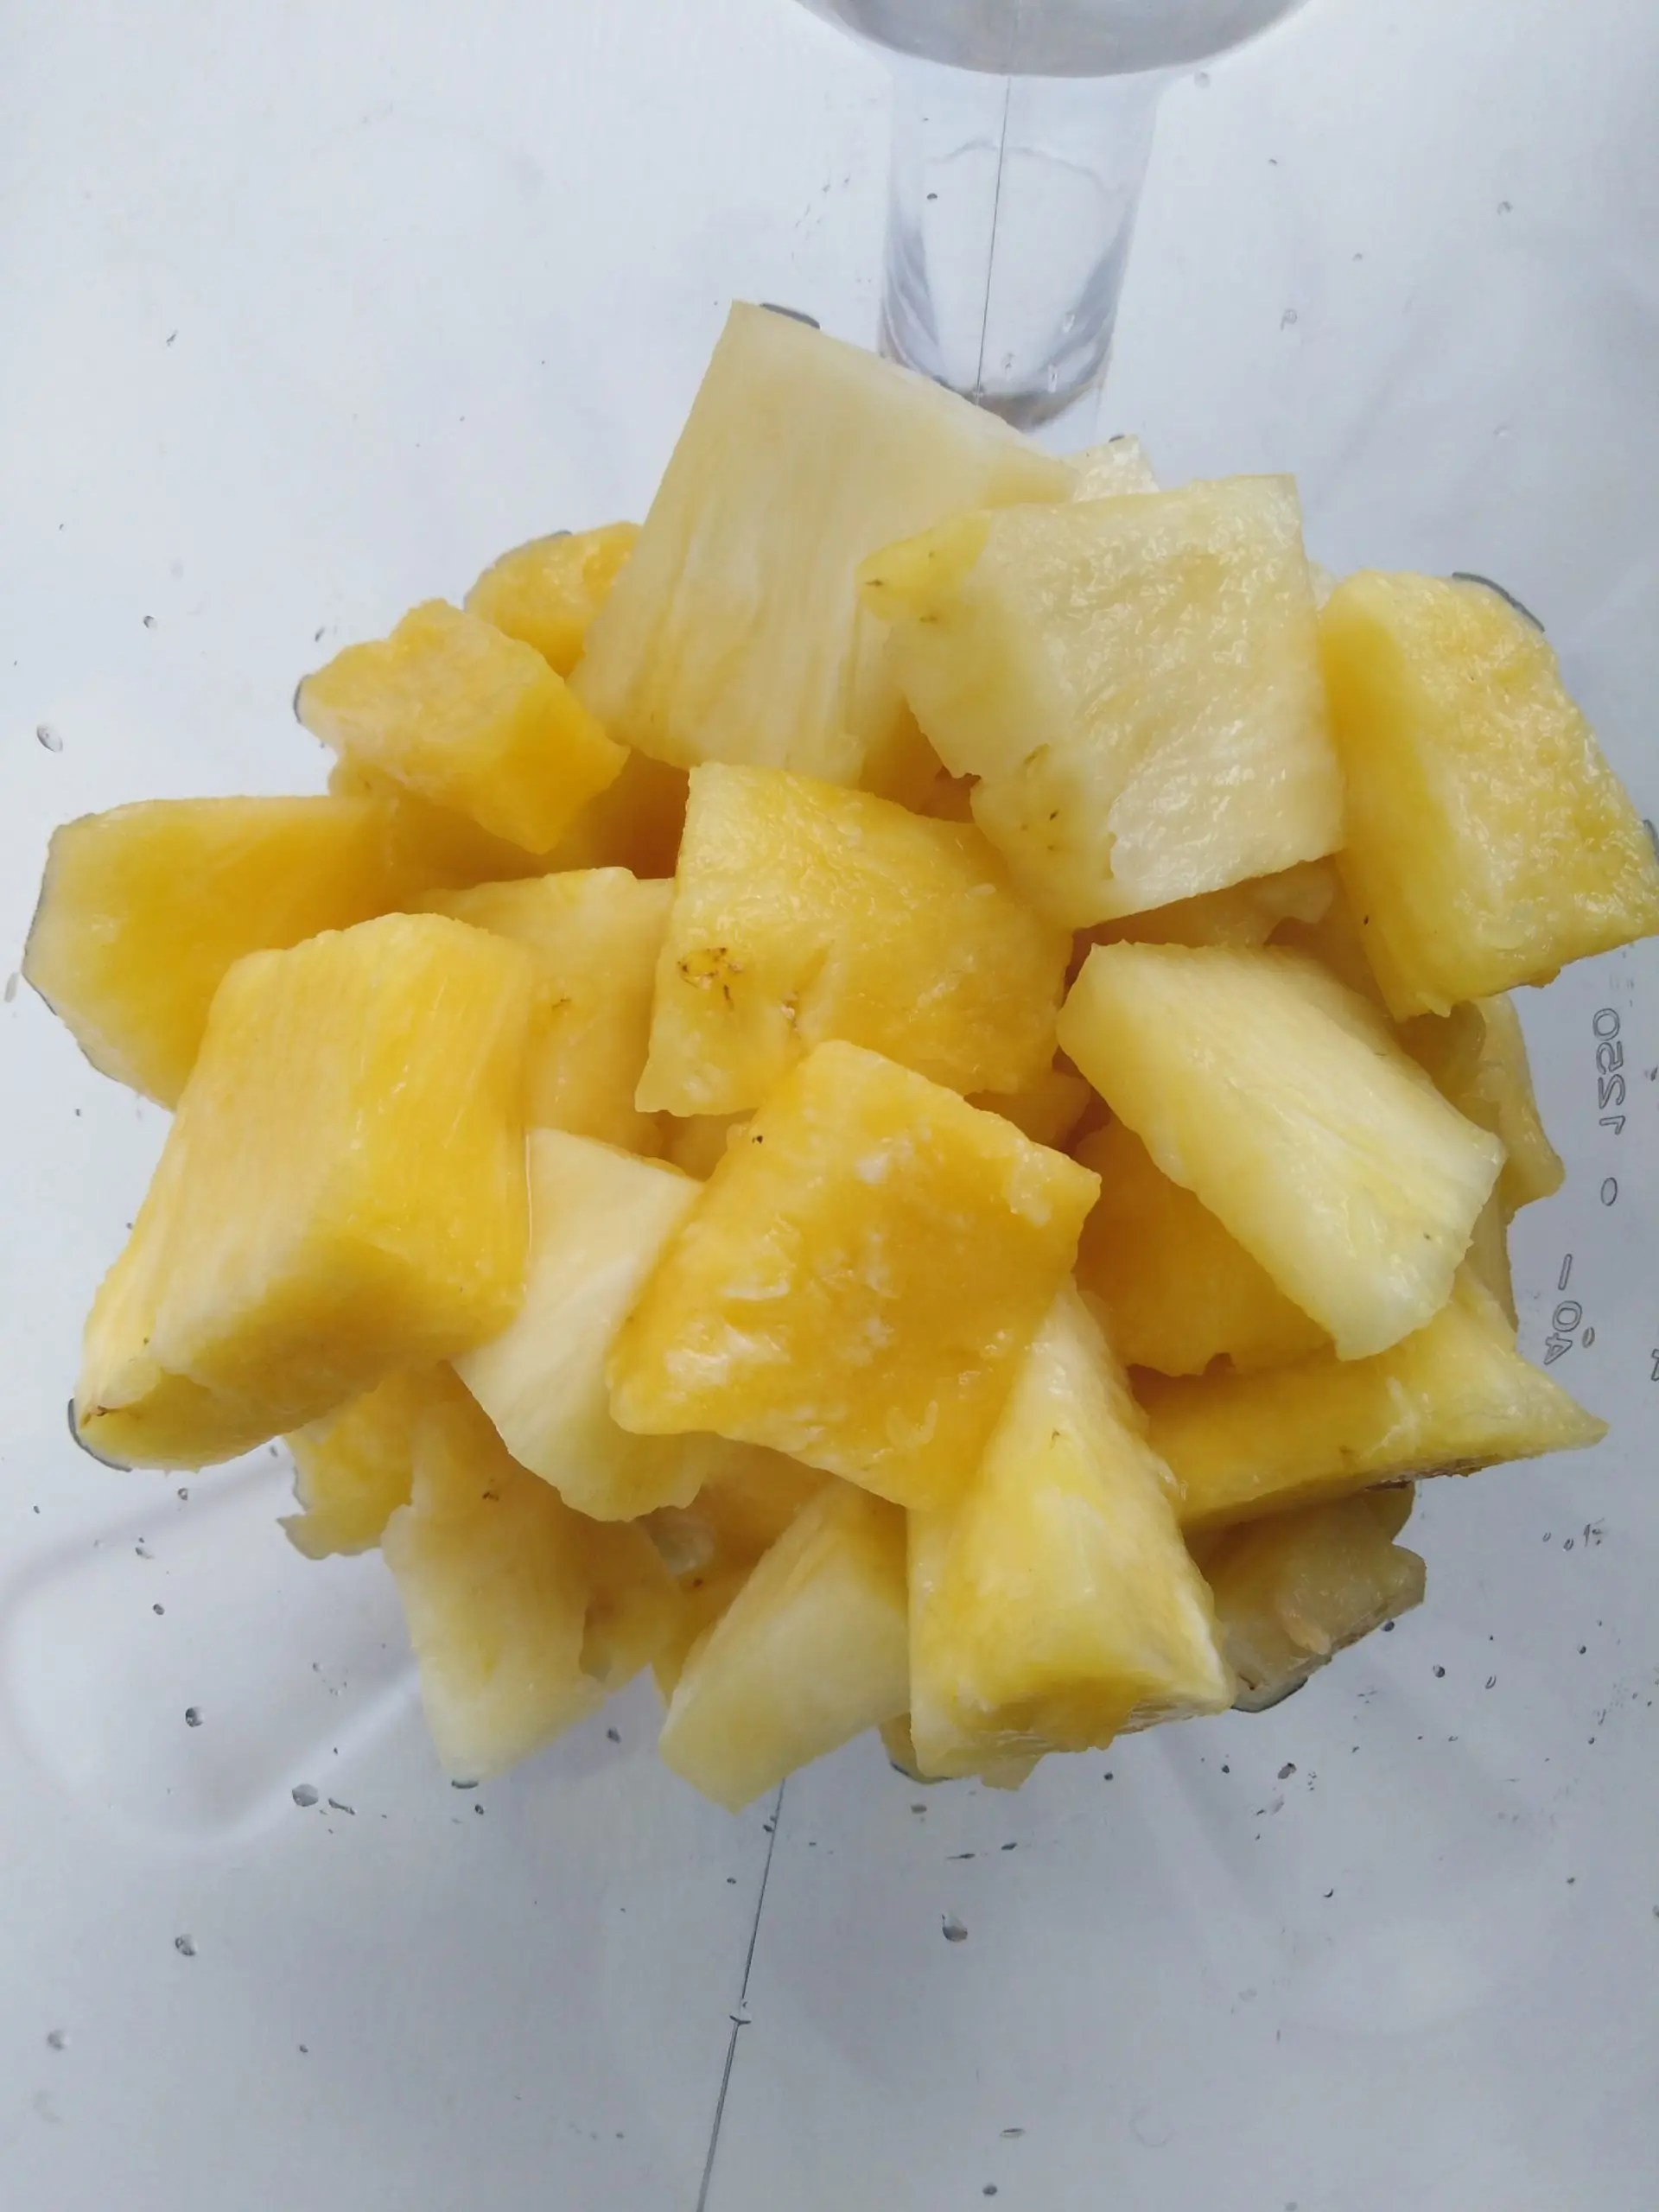 cubed pineapple inside a blender